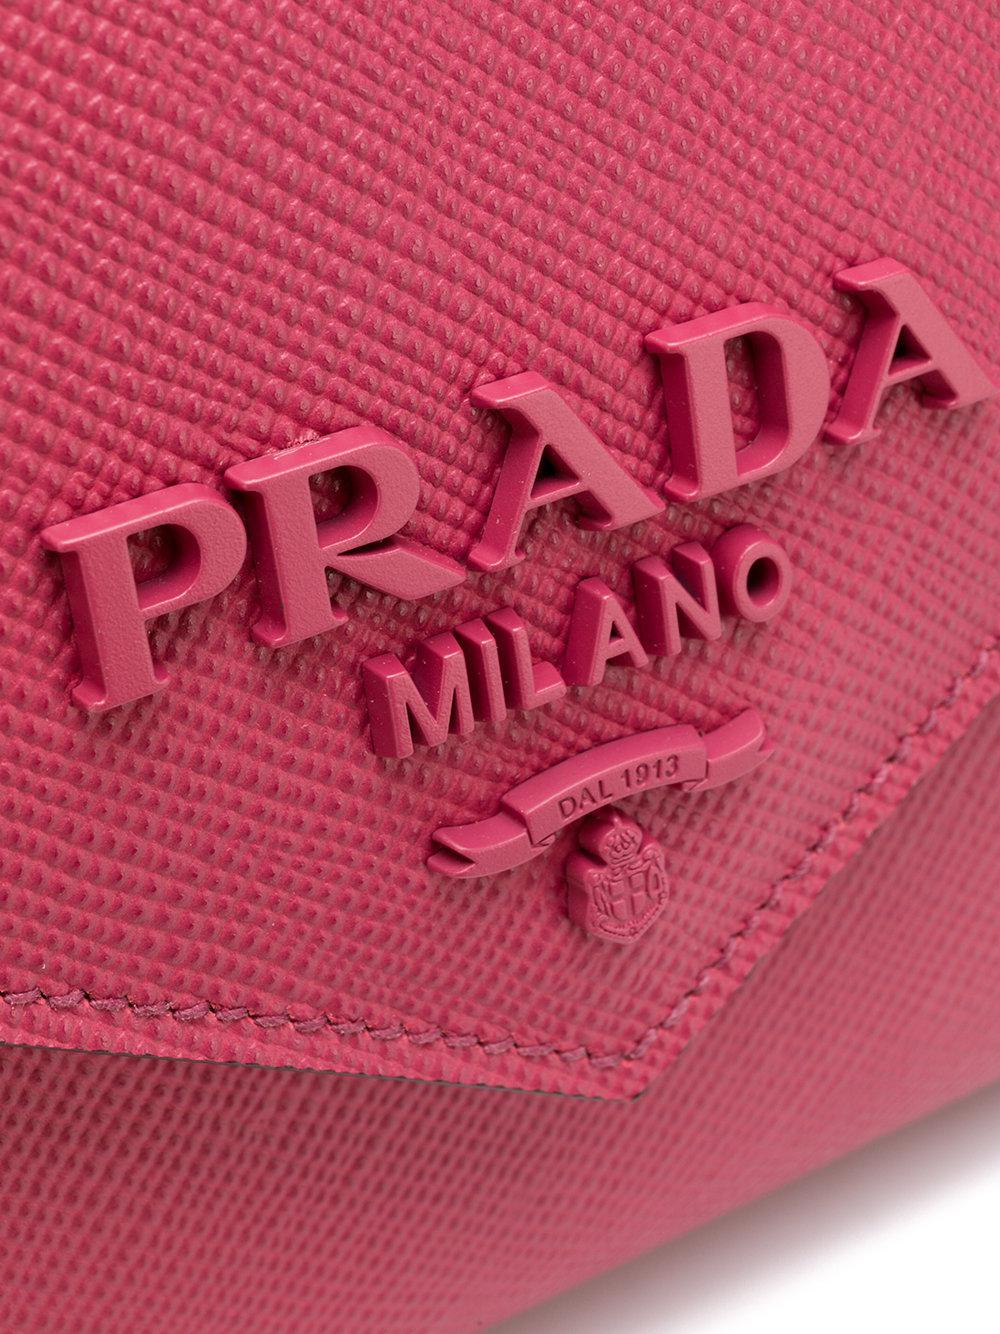 Prada Leather Monochrome Saffiano Crossbody Bag in Pink & Purple (Pink)